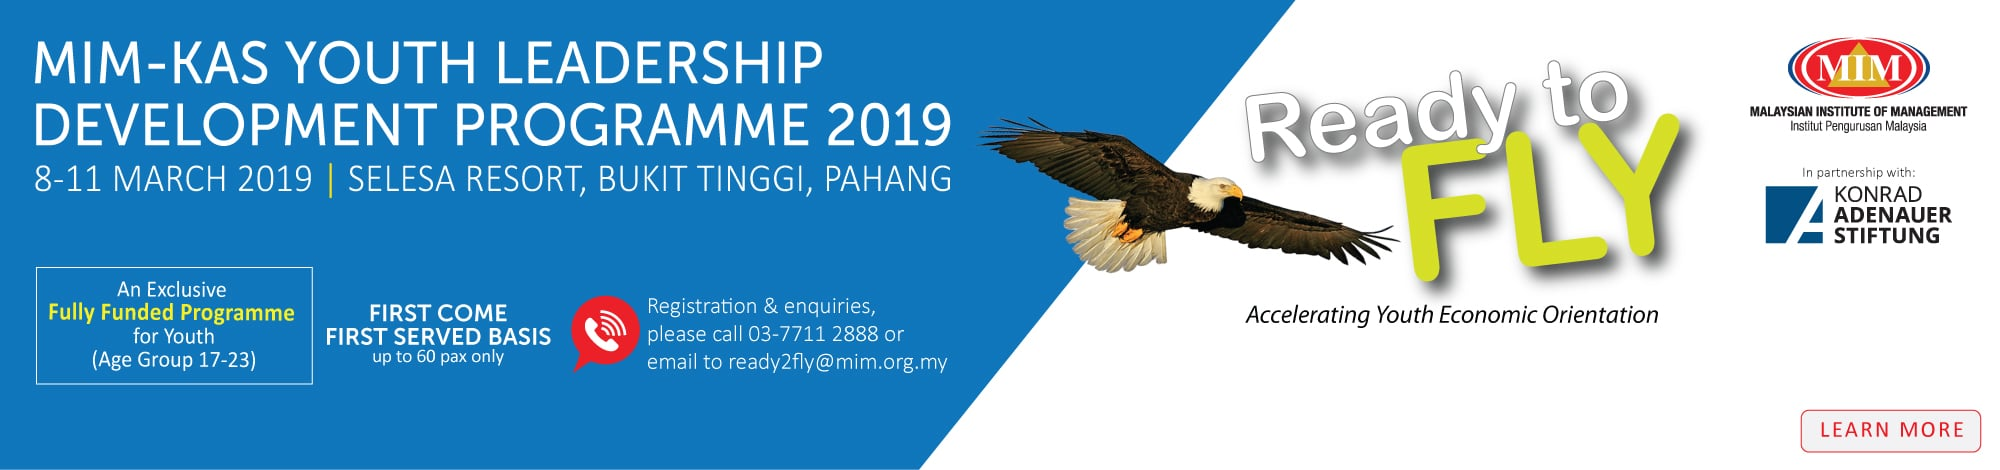 Website-Events-page-800px-X-530-MIM-Youth-Leadership-Development-Programme-2019-2